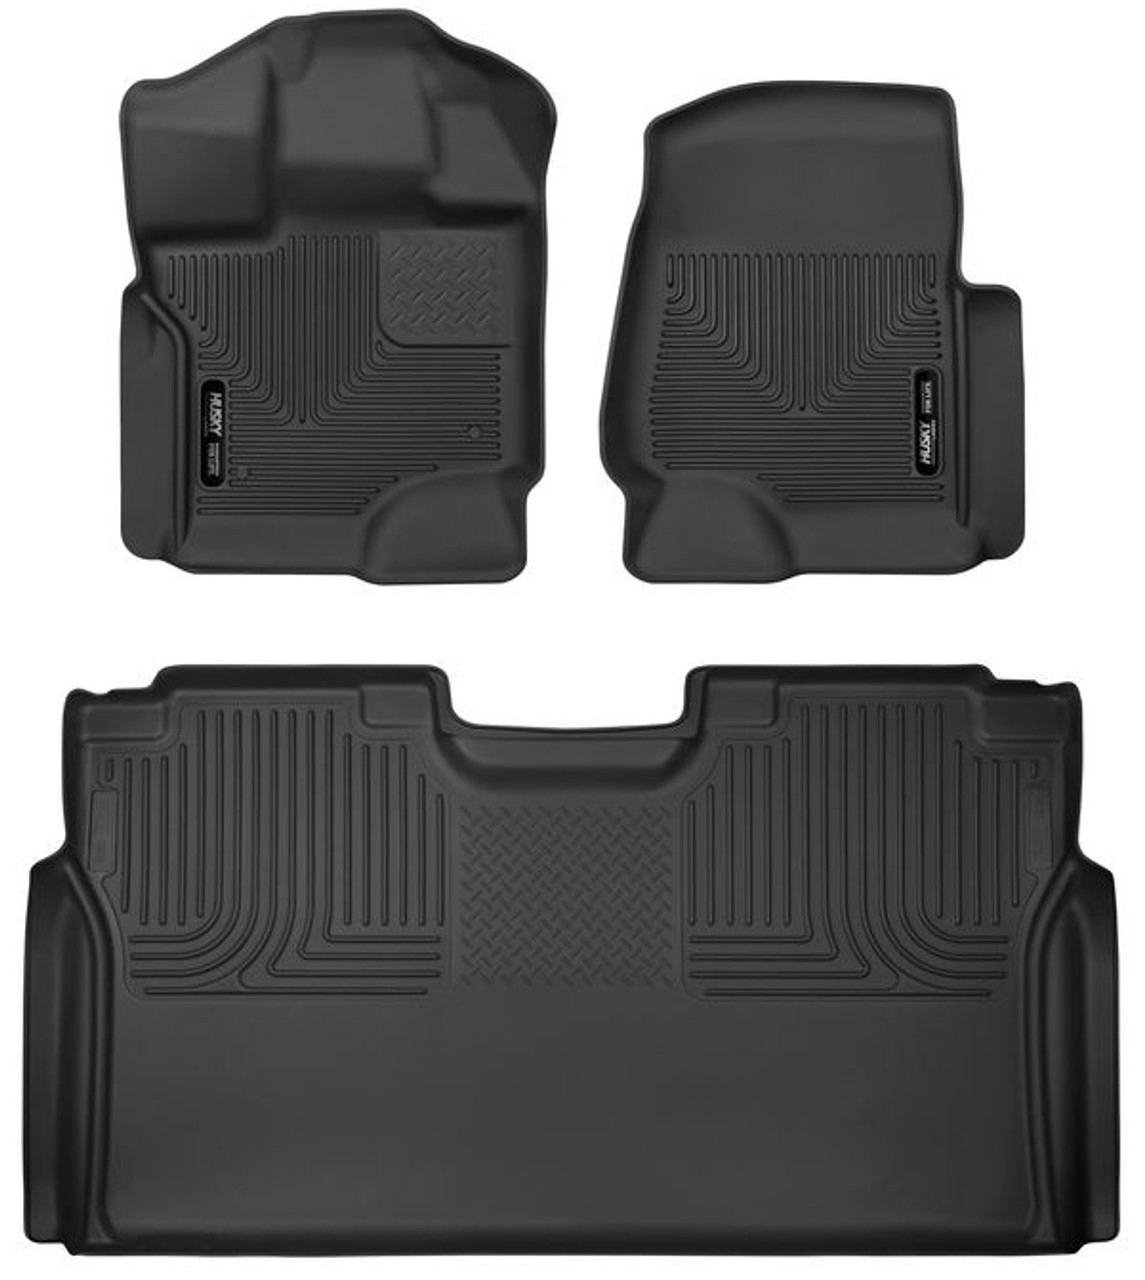 HSK53498, Floor Liner, X-Act Contour, Front / 2nd Row, Plastic, Black / Textured, Super Crew Cab, Ford Fullsize Truck 2015-20, Each